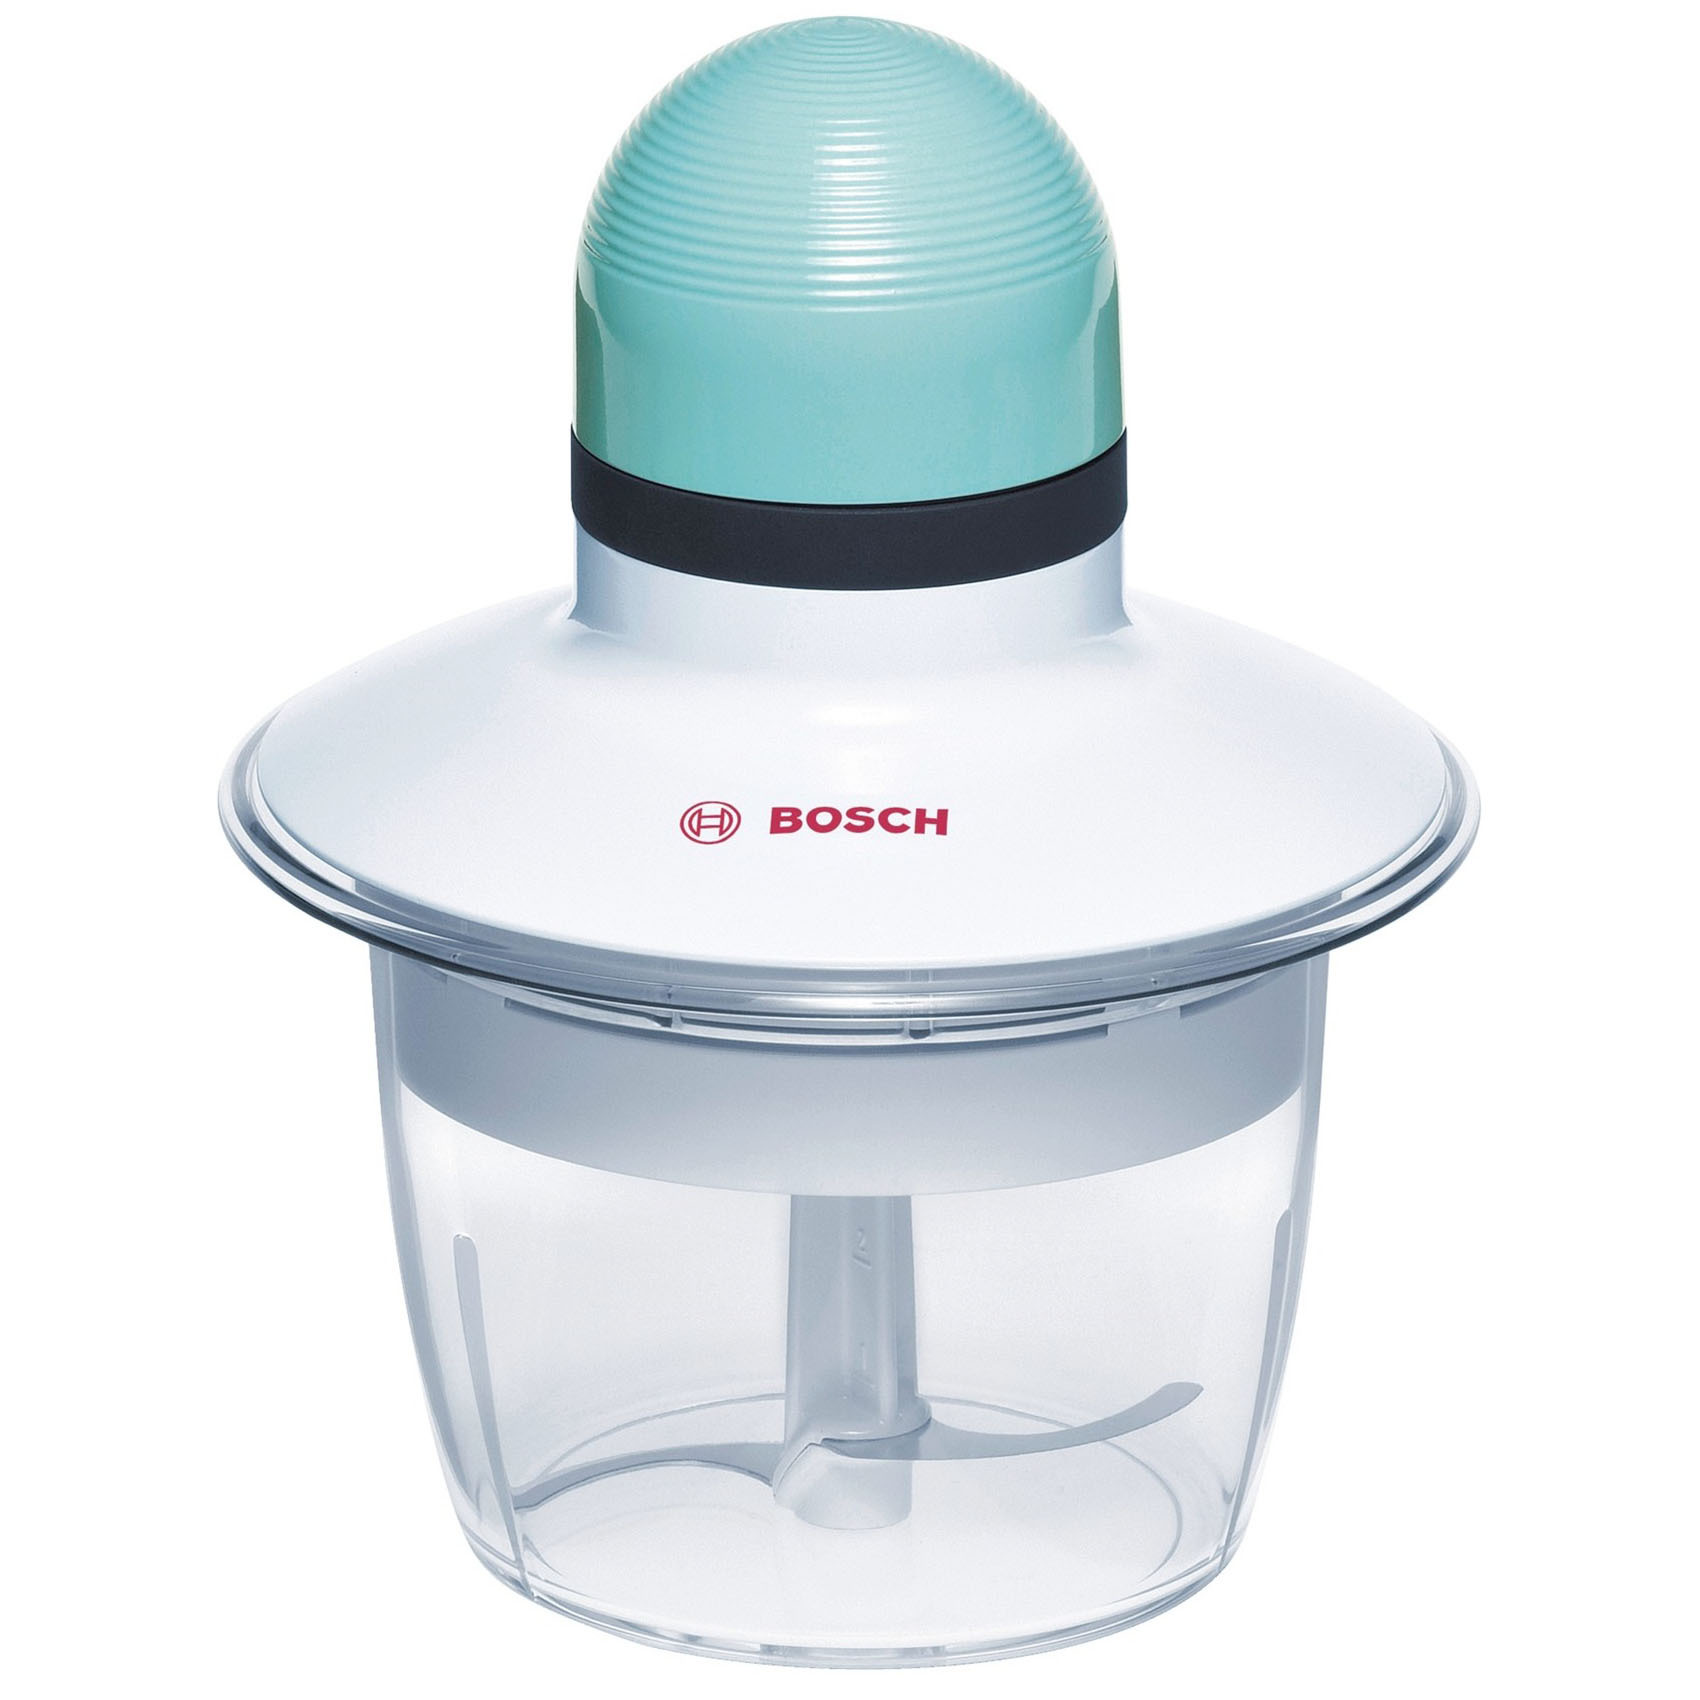 BOSCH CHOPPER MMR0801GB